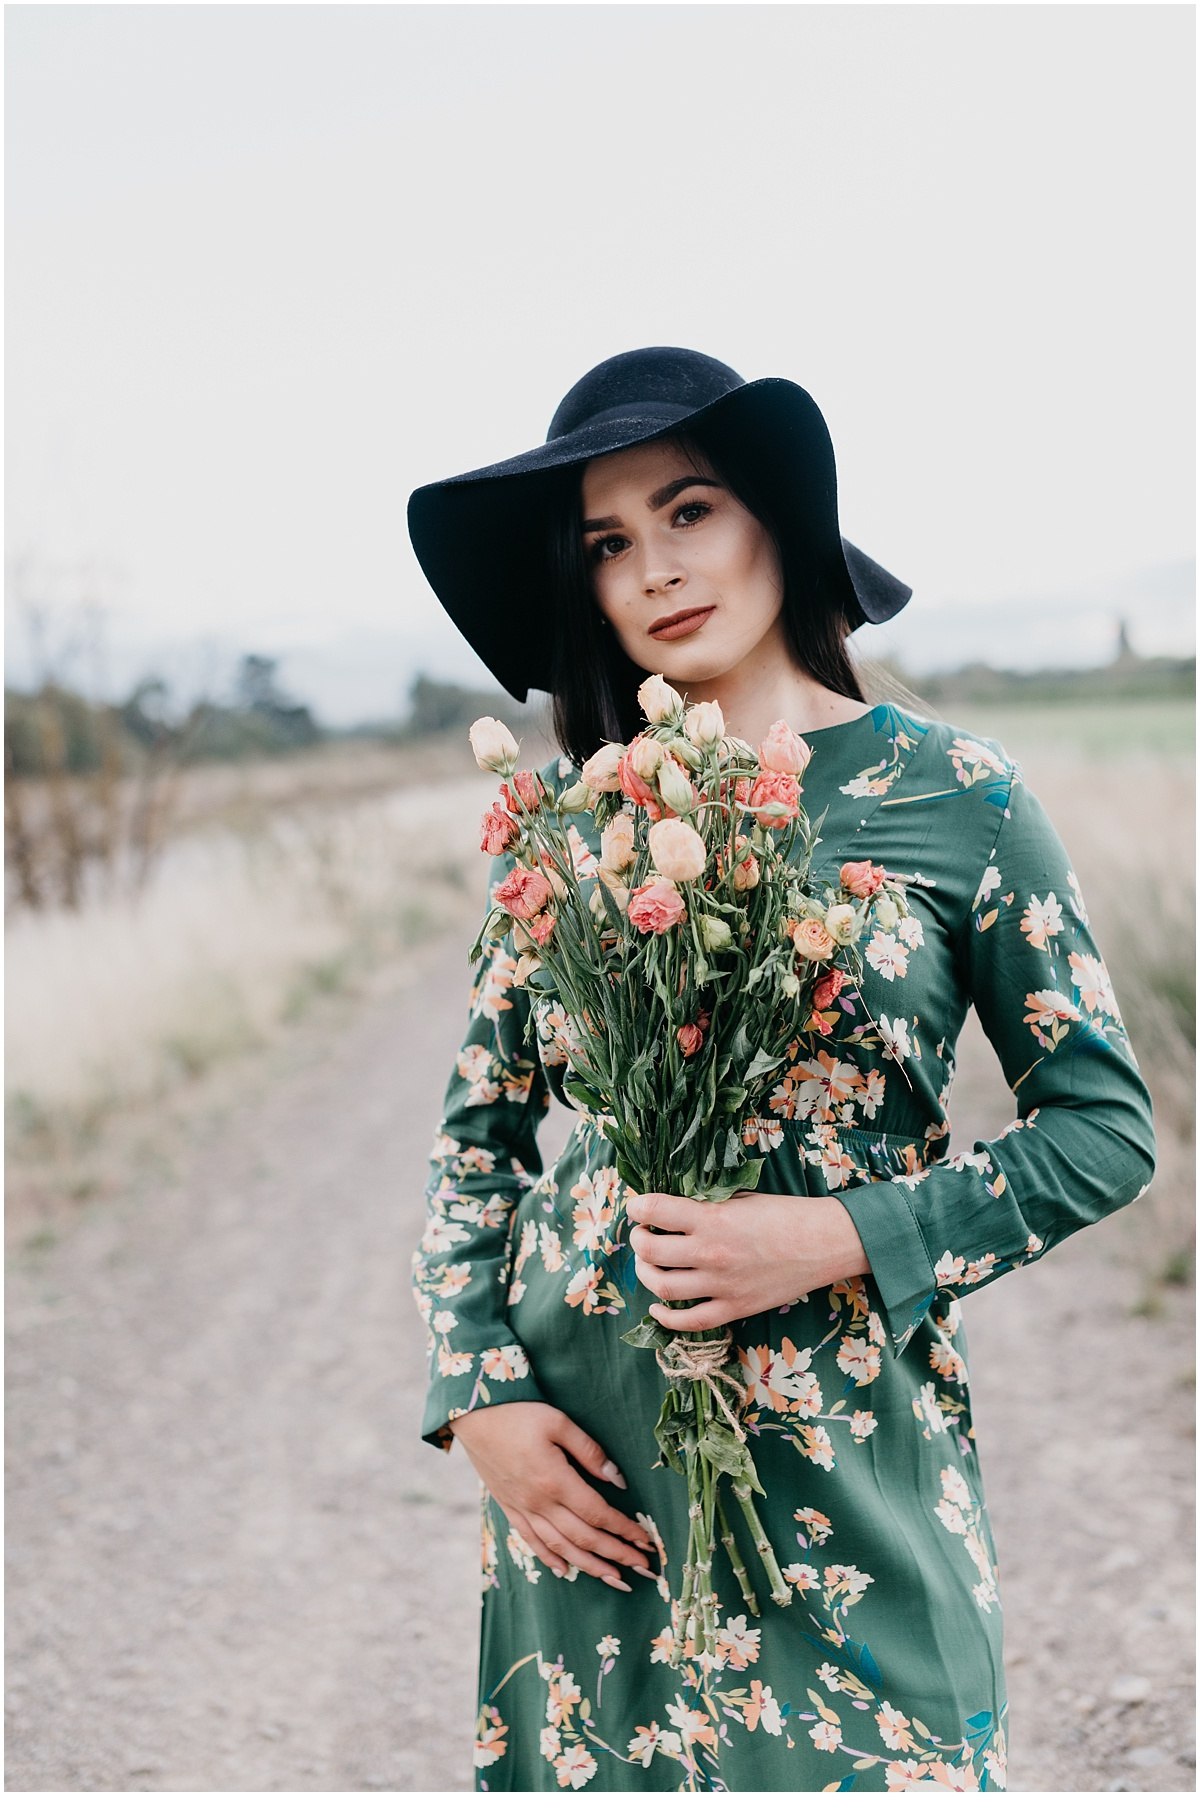 Woman in a green floral dress standing on a track